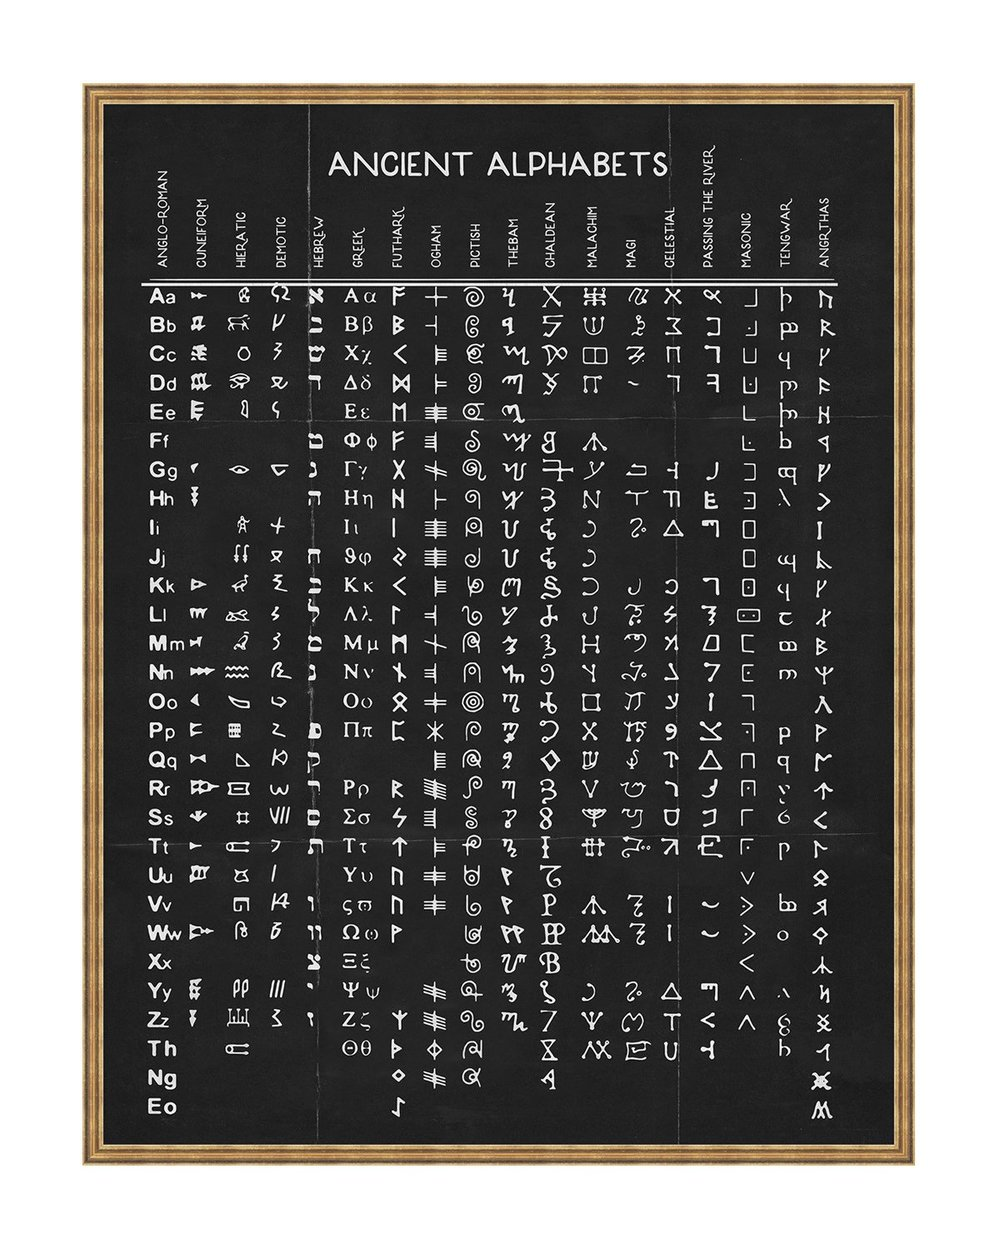 Ancient_Alphabets_1.jpg